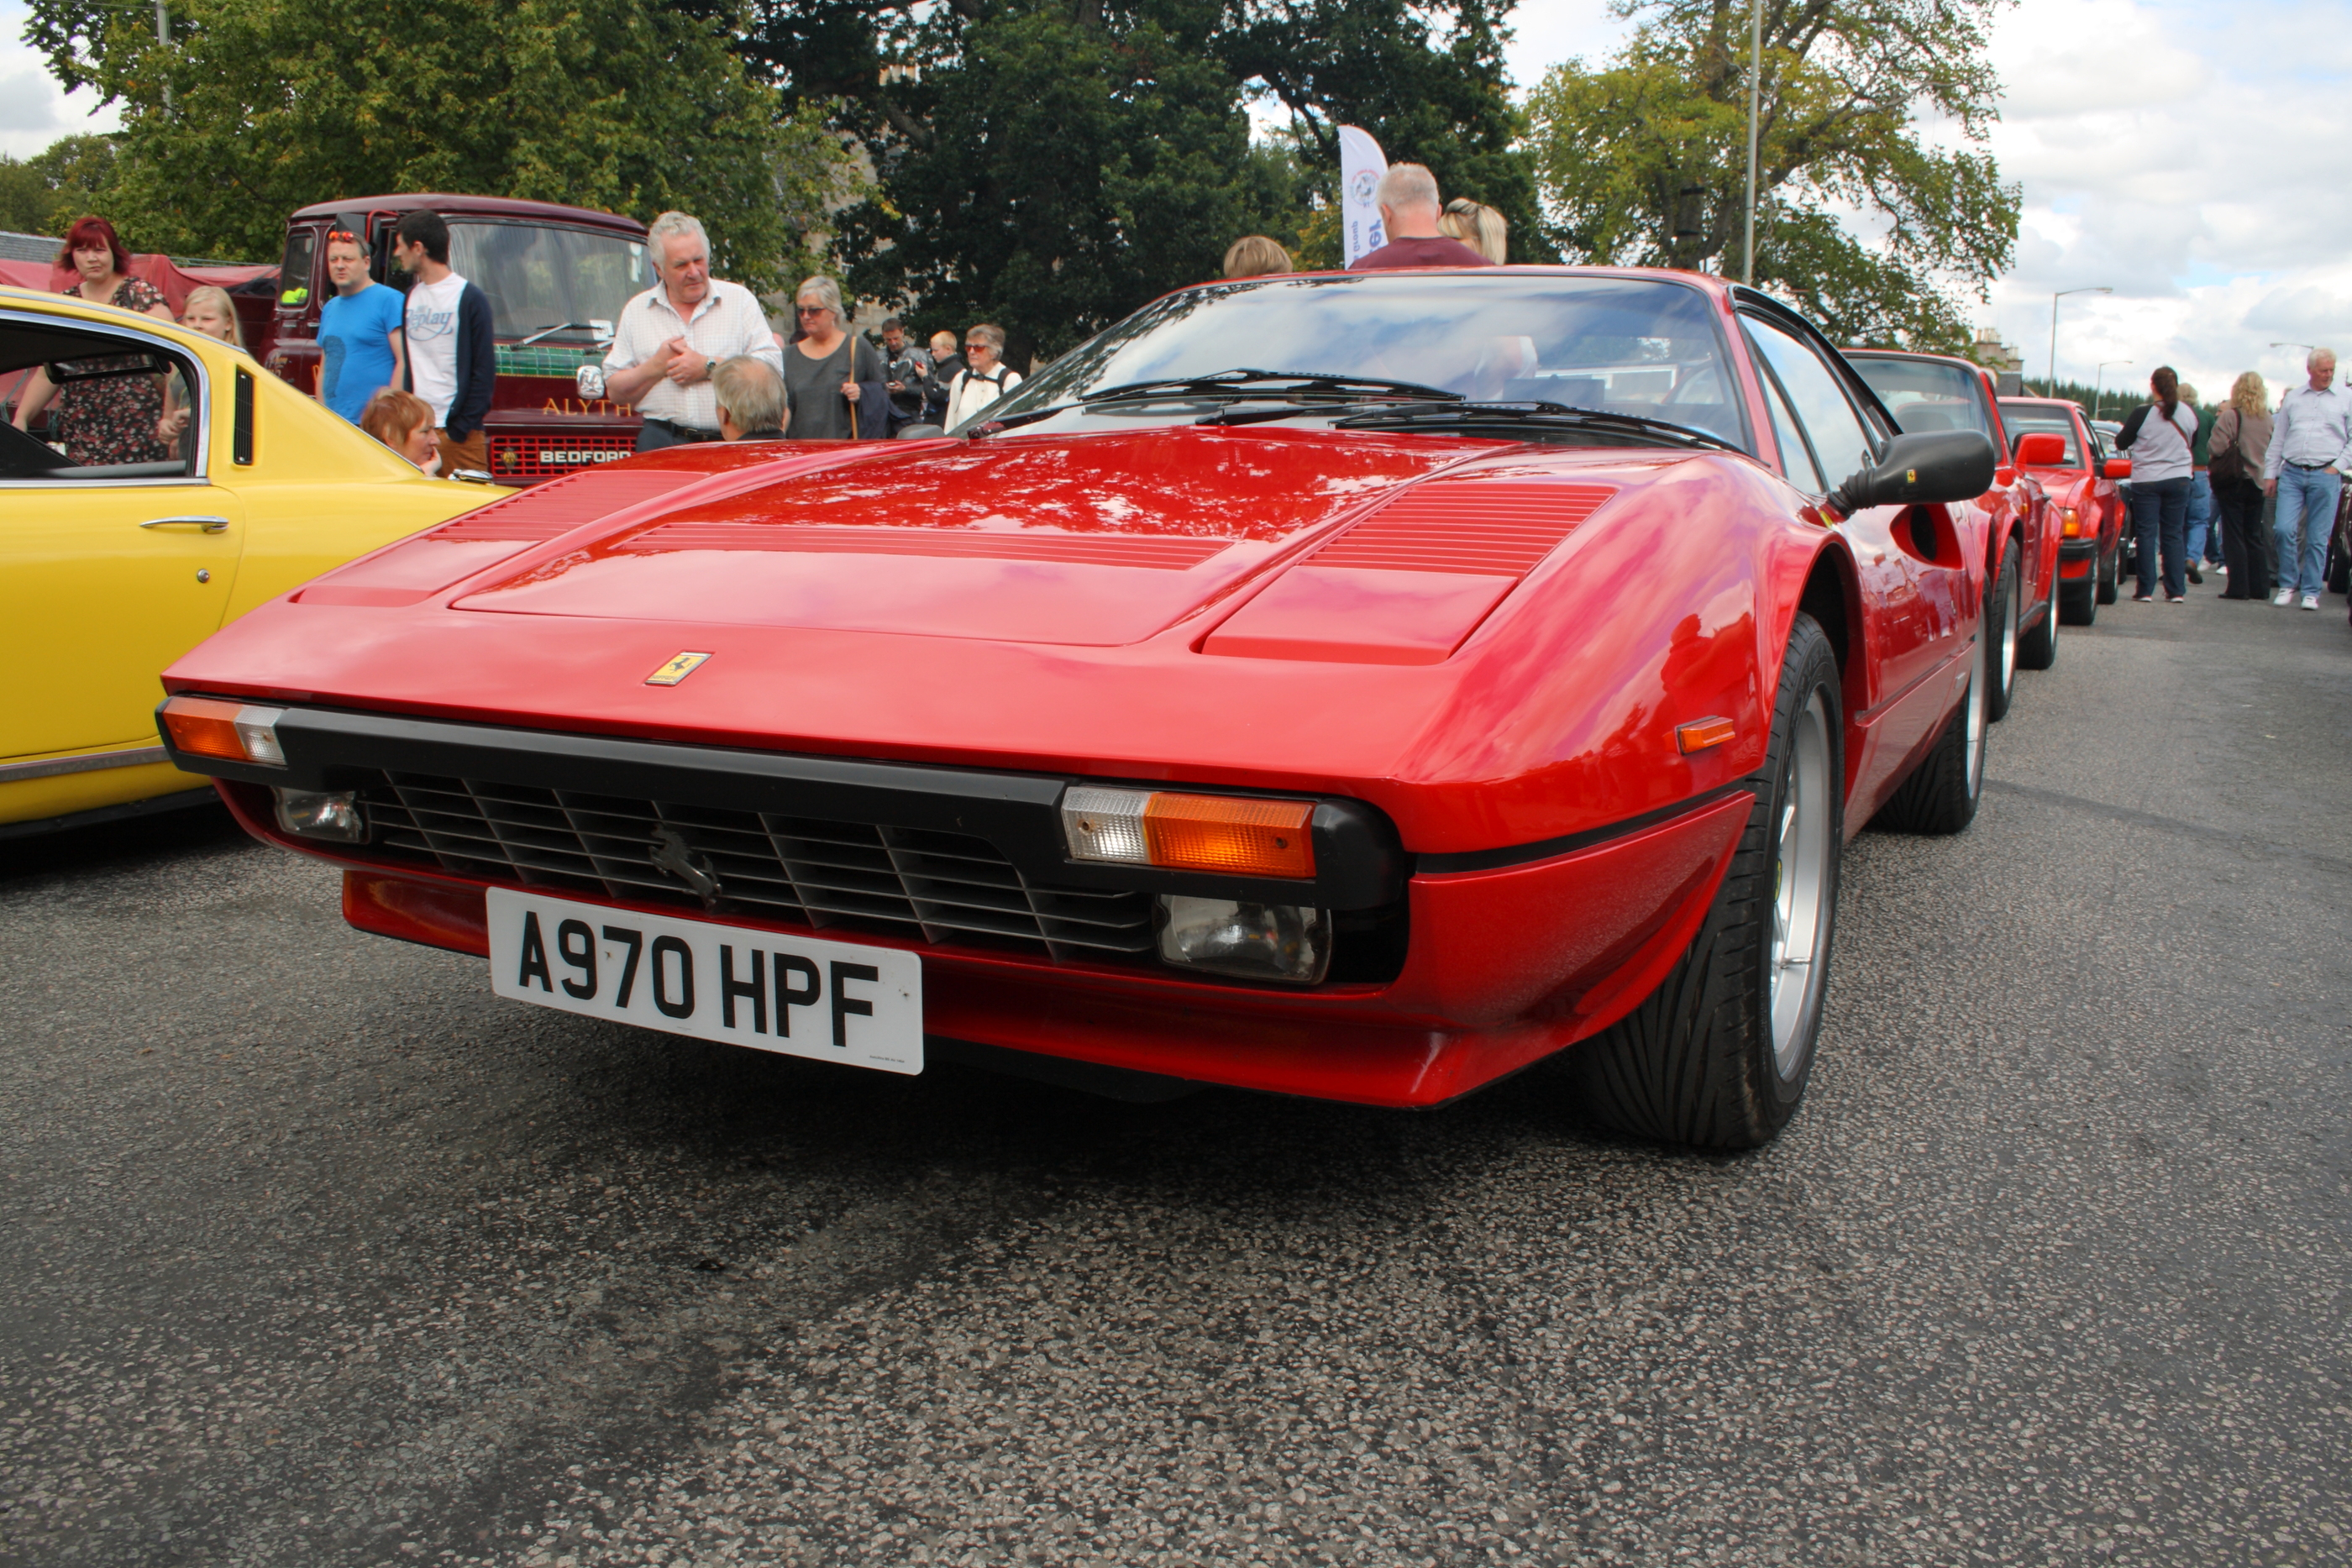 FERRARI 308 BY JOHNBRAID